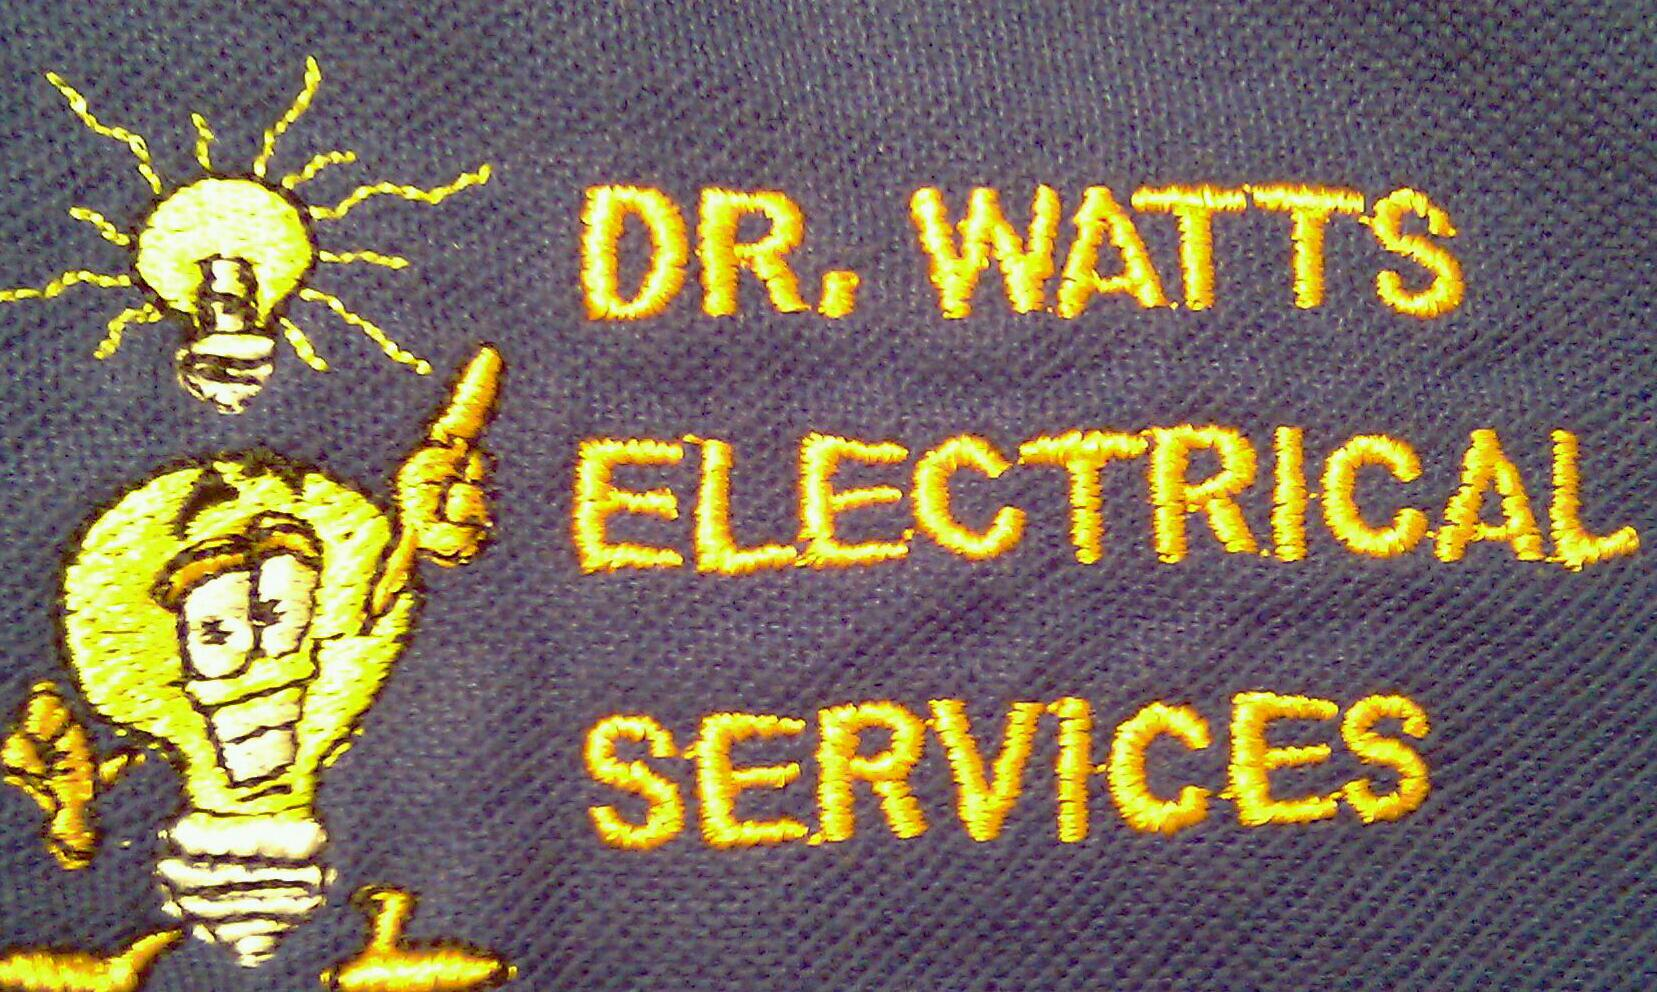 Dr. Watts Electrical Services image 15